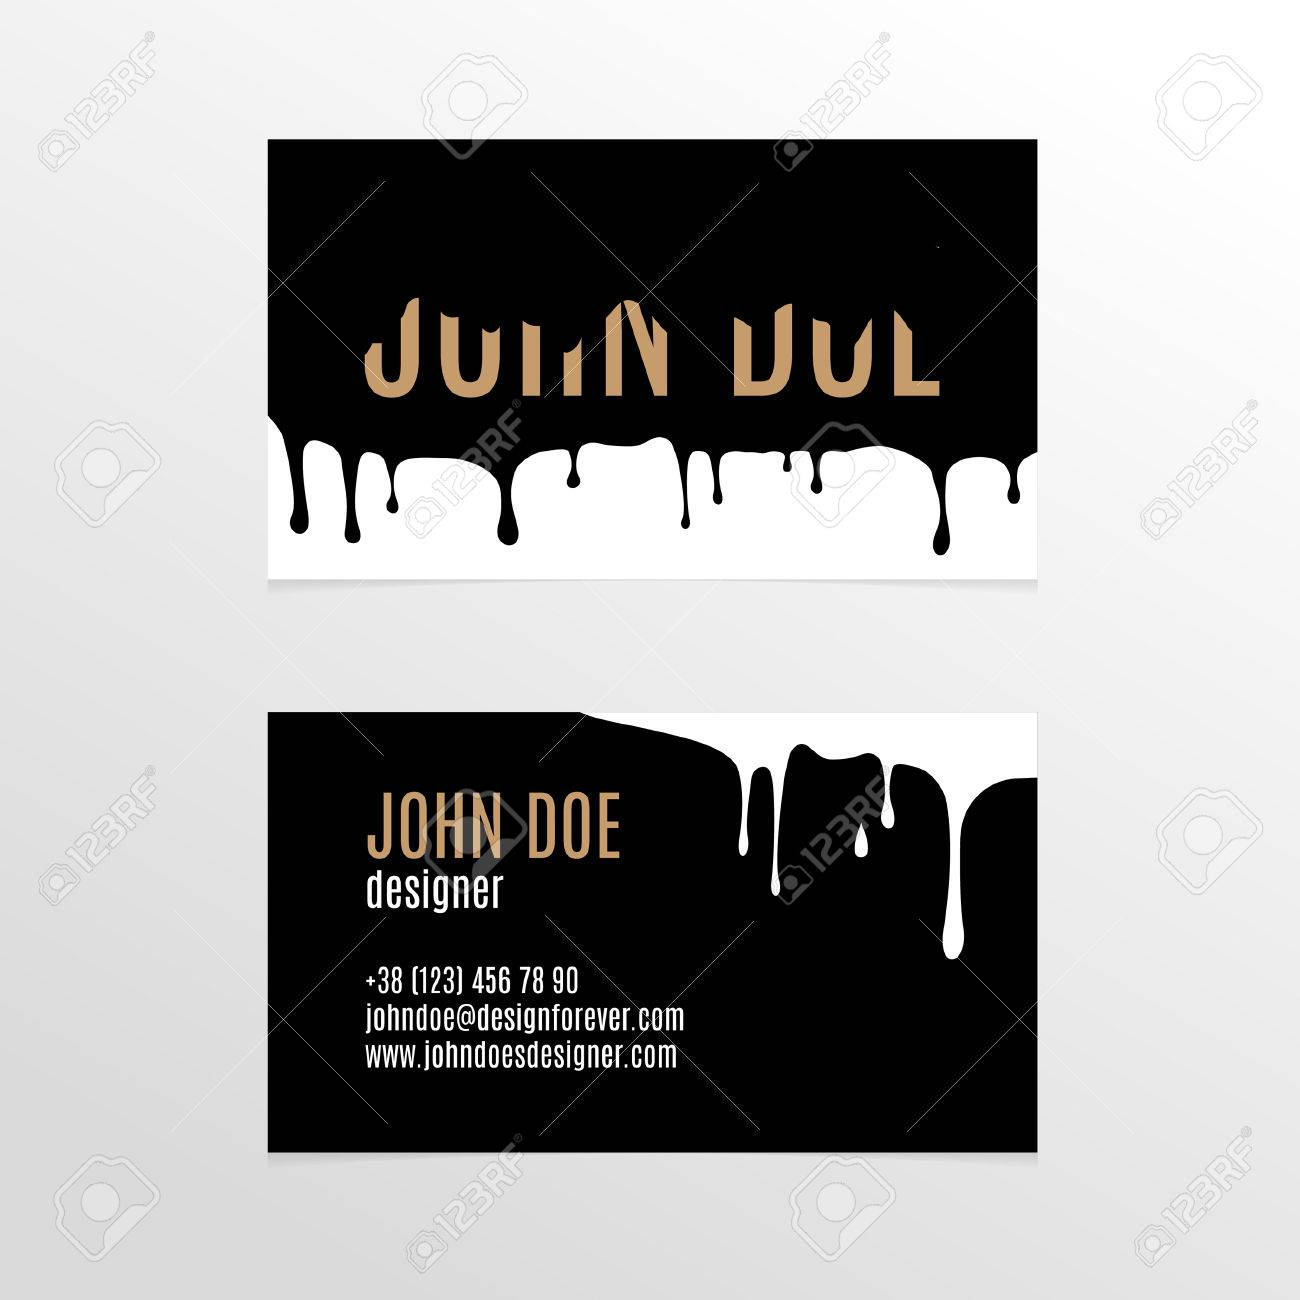 Stylish Business Card Design With Dripping Black Paint Royalty Free ...